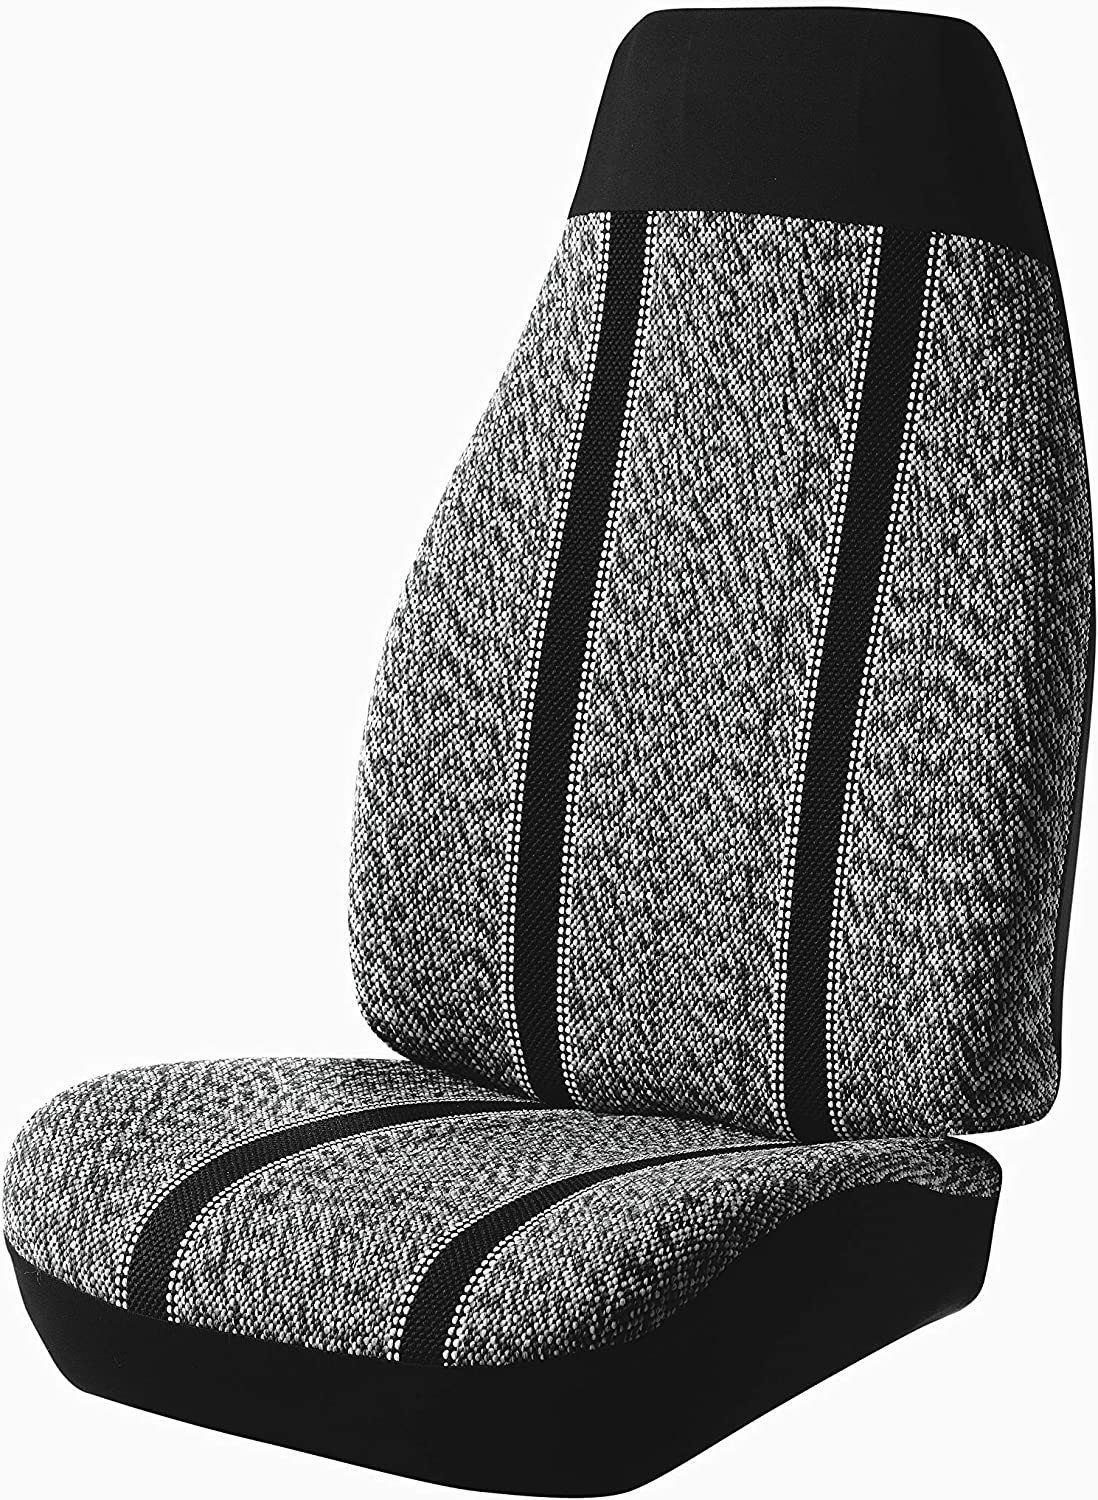 Tweed, Taupe Fia OE38-32 TAUPE Custom Fit Front Seat Cover Bucket Seats